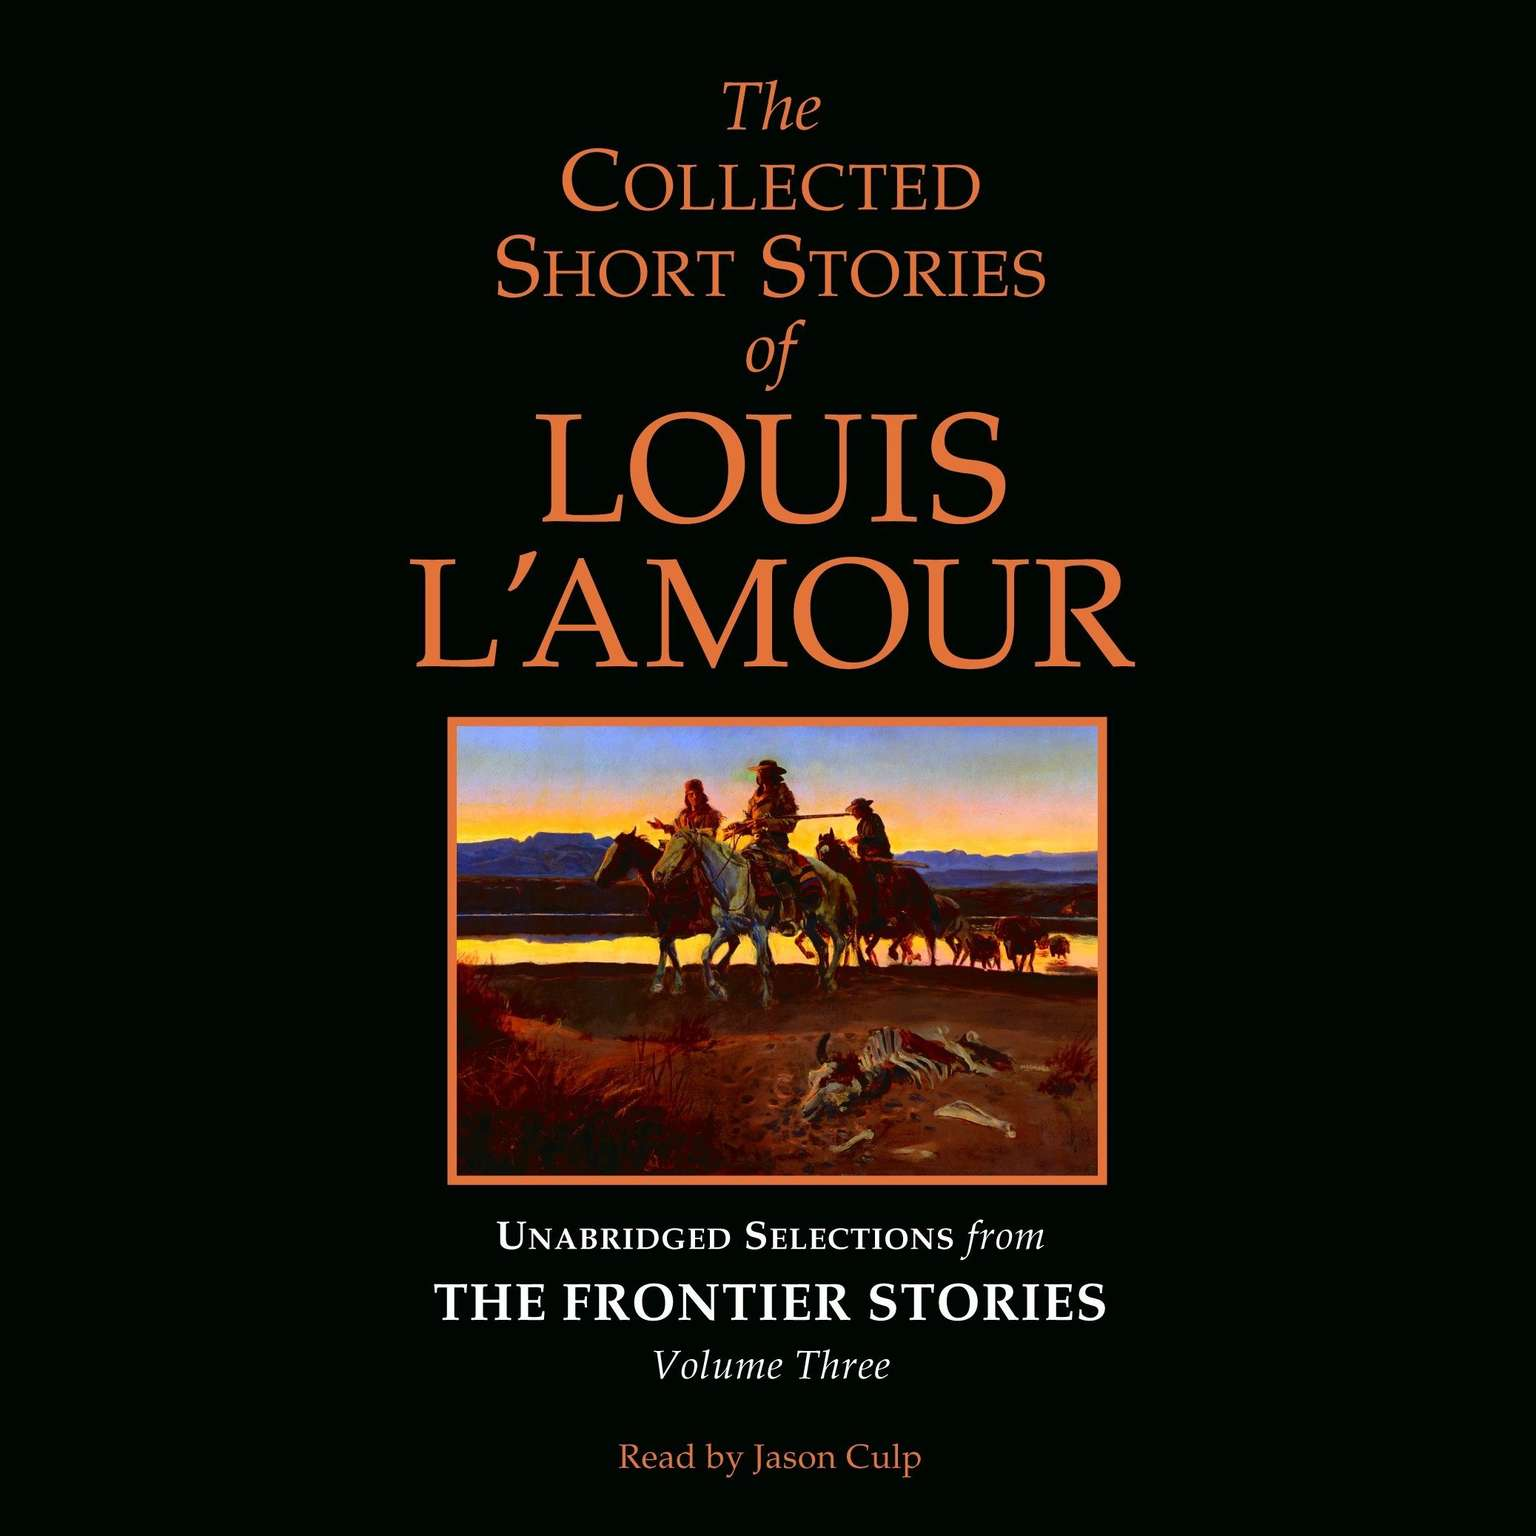 Printable The Collected Short Stories of Louis L'Amour: Unabridged Selections from The Frontier Stories: Volume 3: The Frontier Stories Audiobook Cover Art